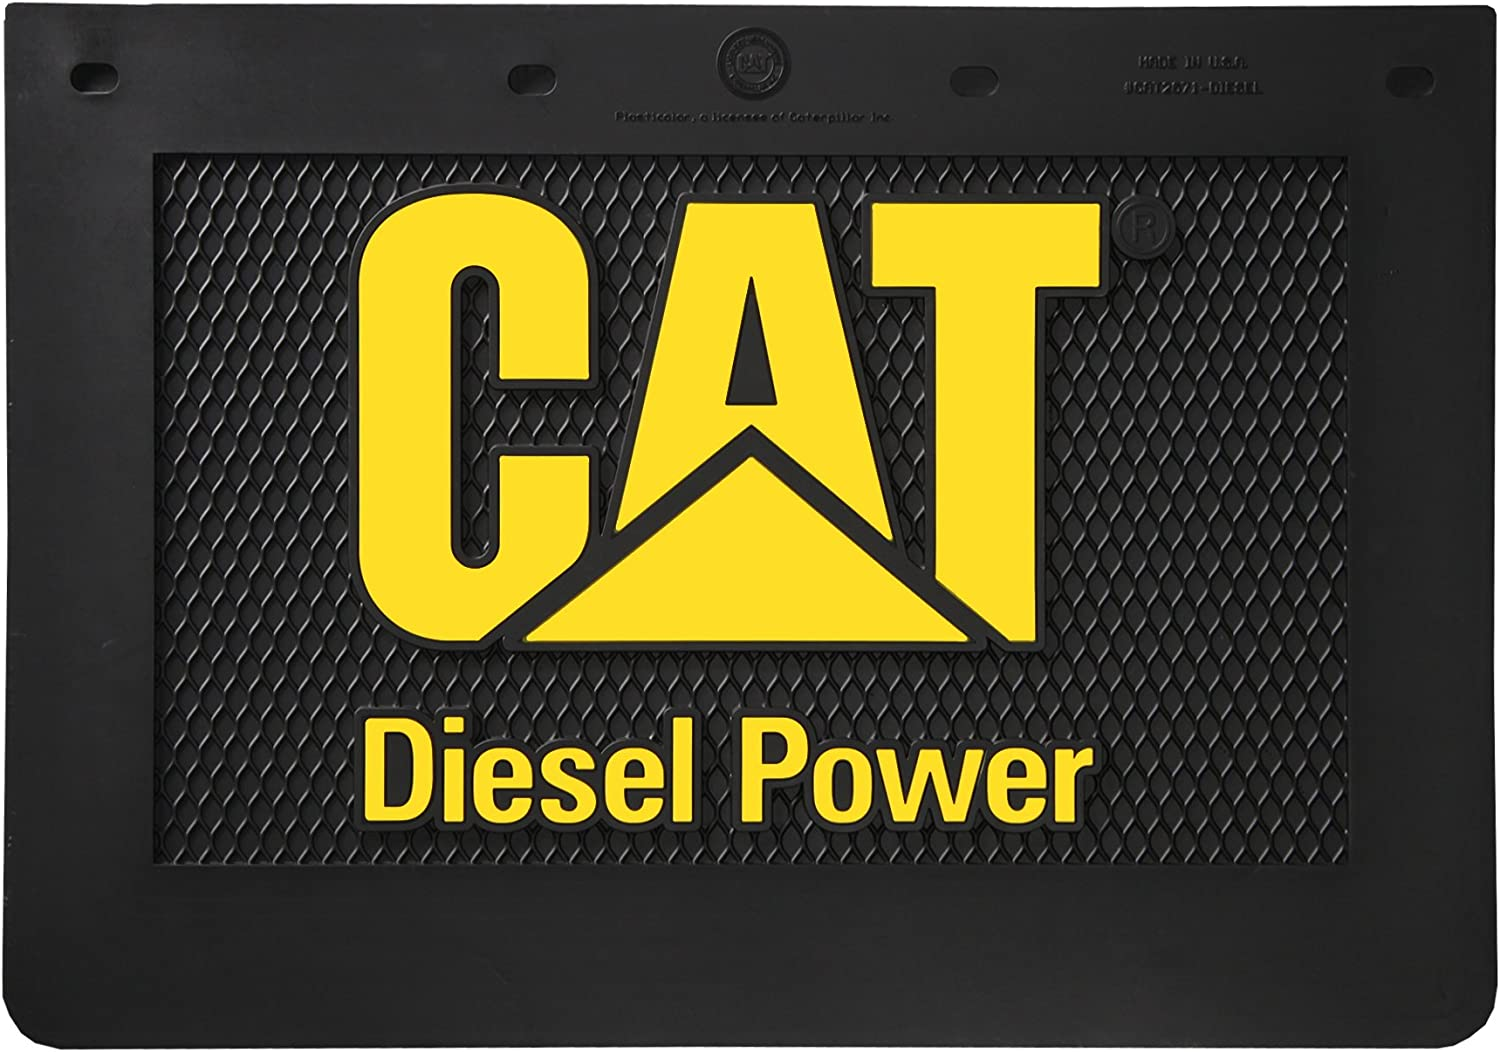 cat caterpillar tractor gray diesel power semi mudflap truck mud flap 24x14